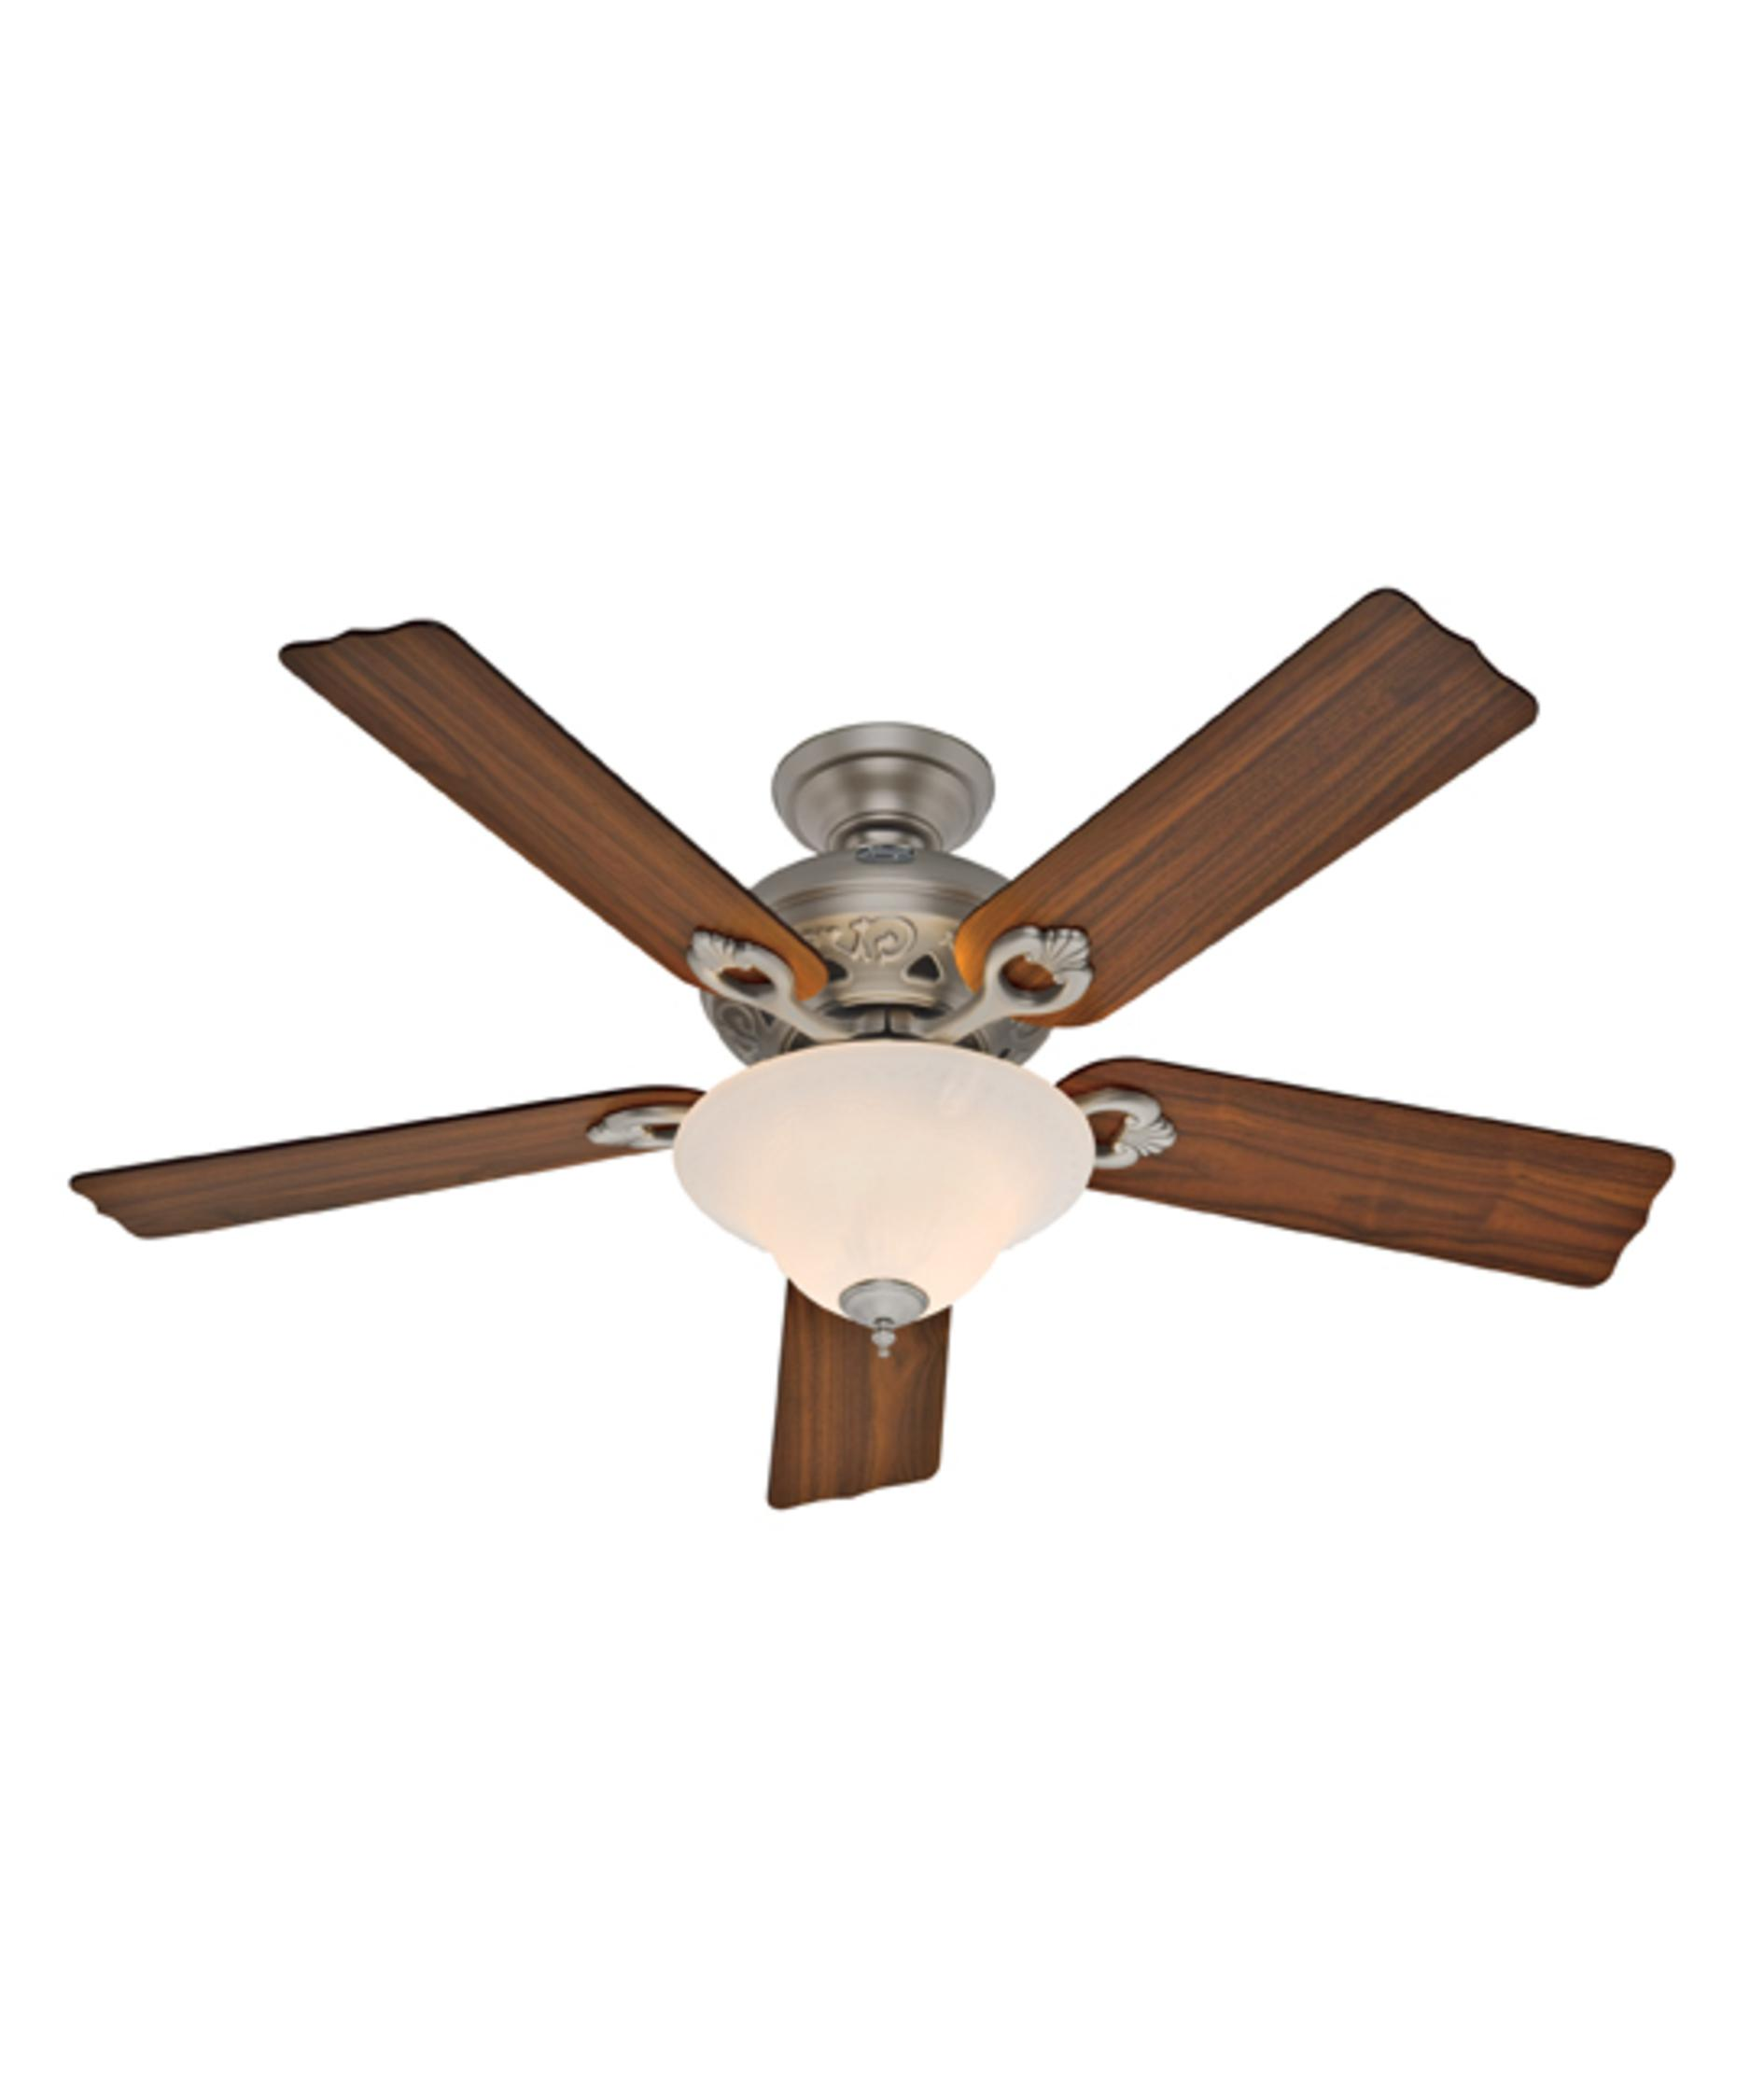 Murray Feiss Ceiling Fan Light Kit: Hunter Fan 21575 Auberge 52 Inch Ceiling Fan With Light